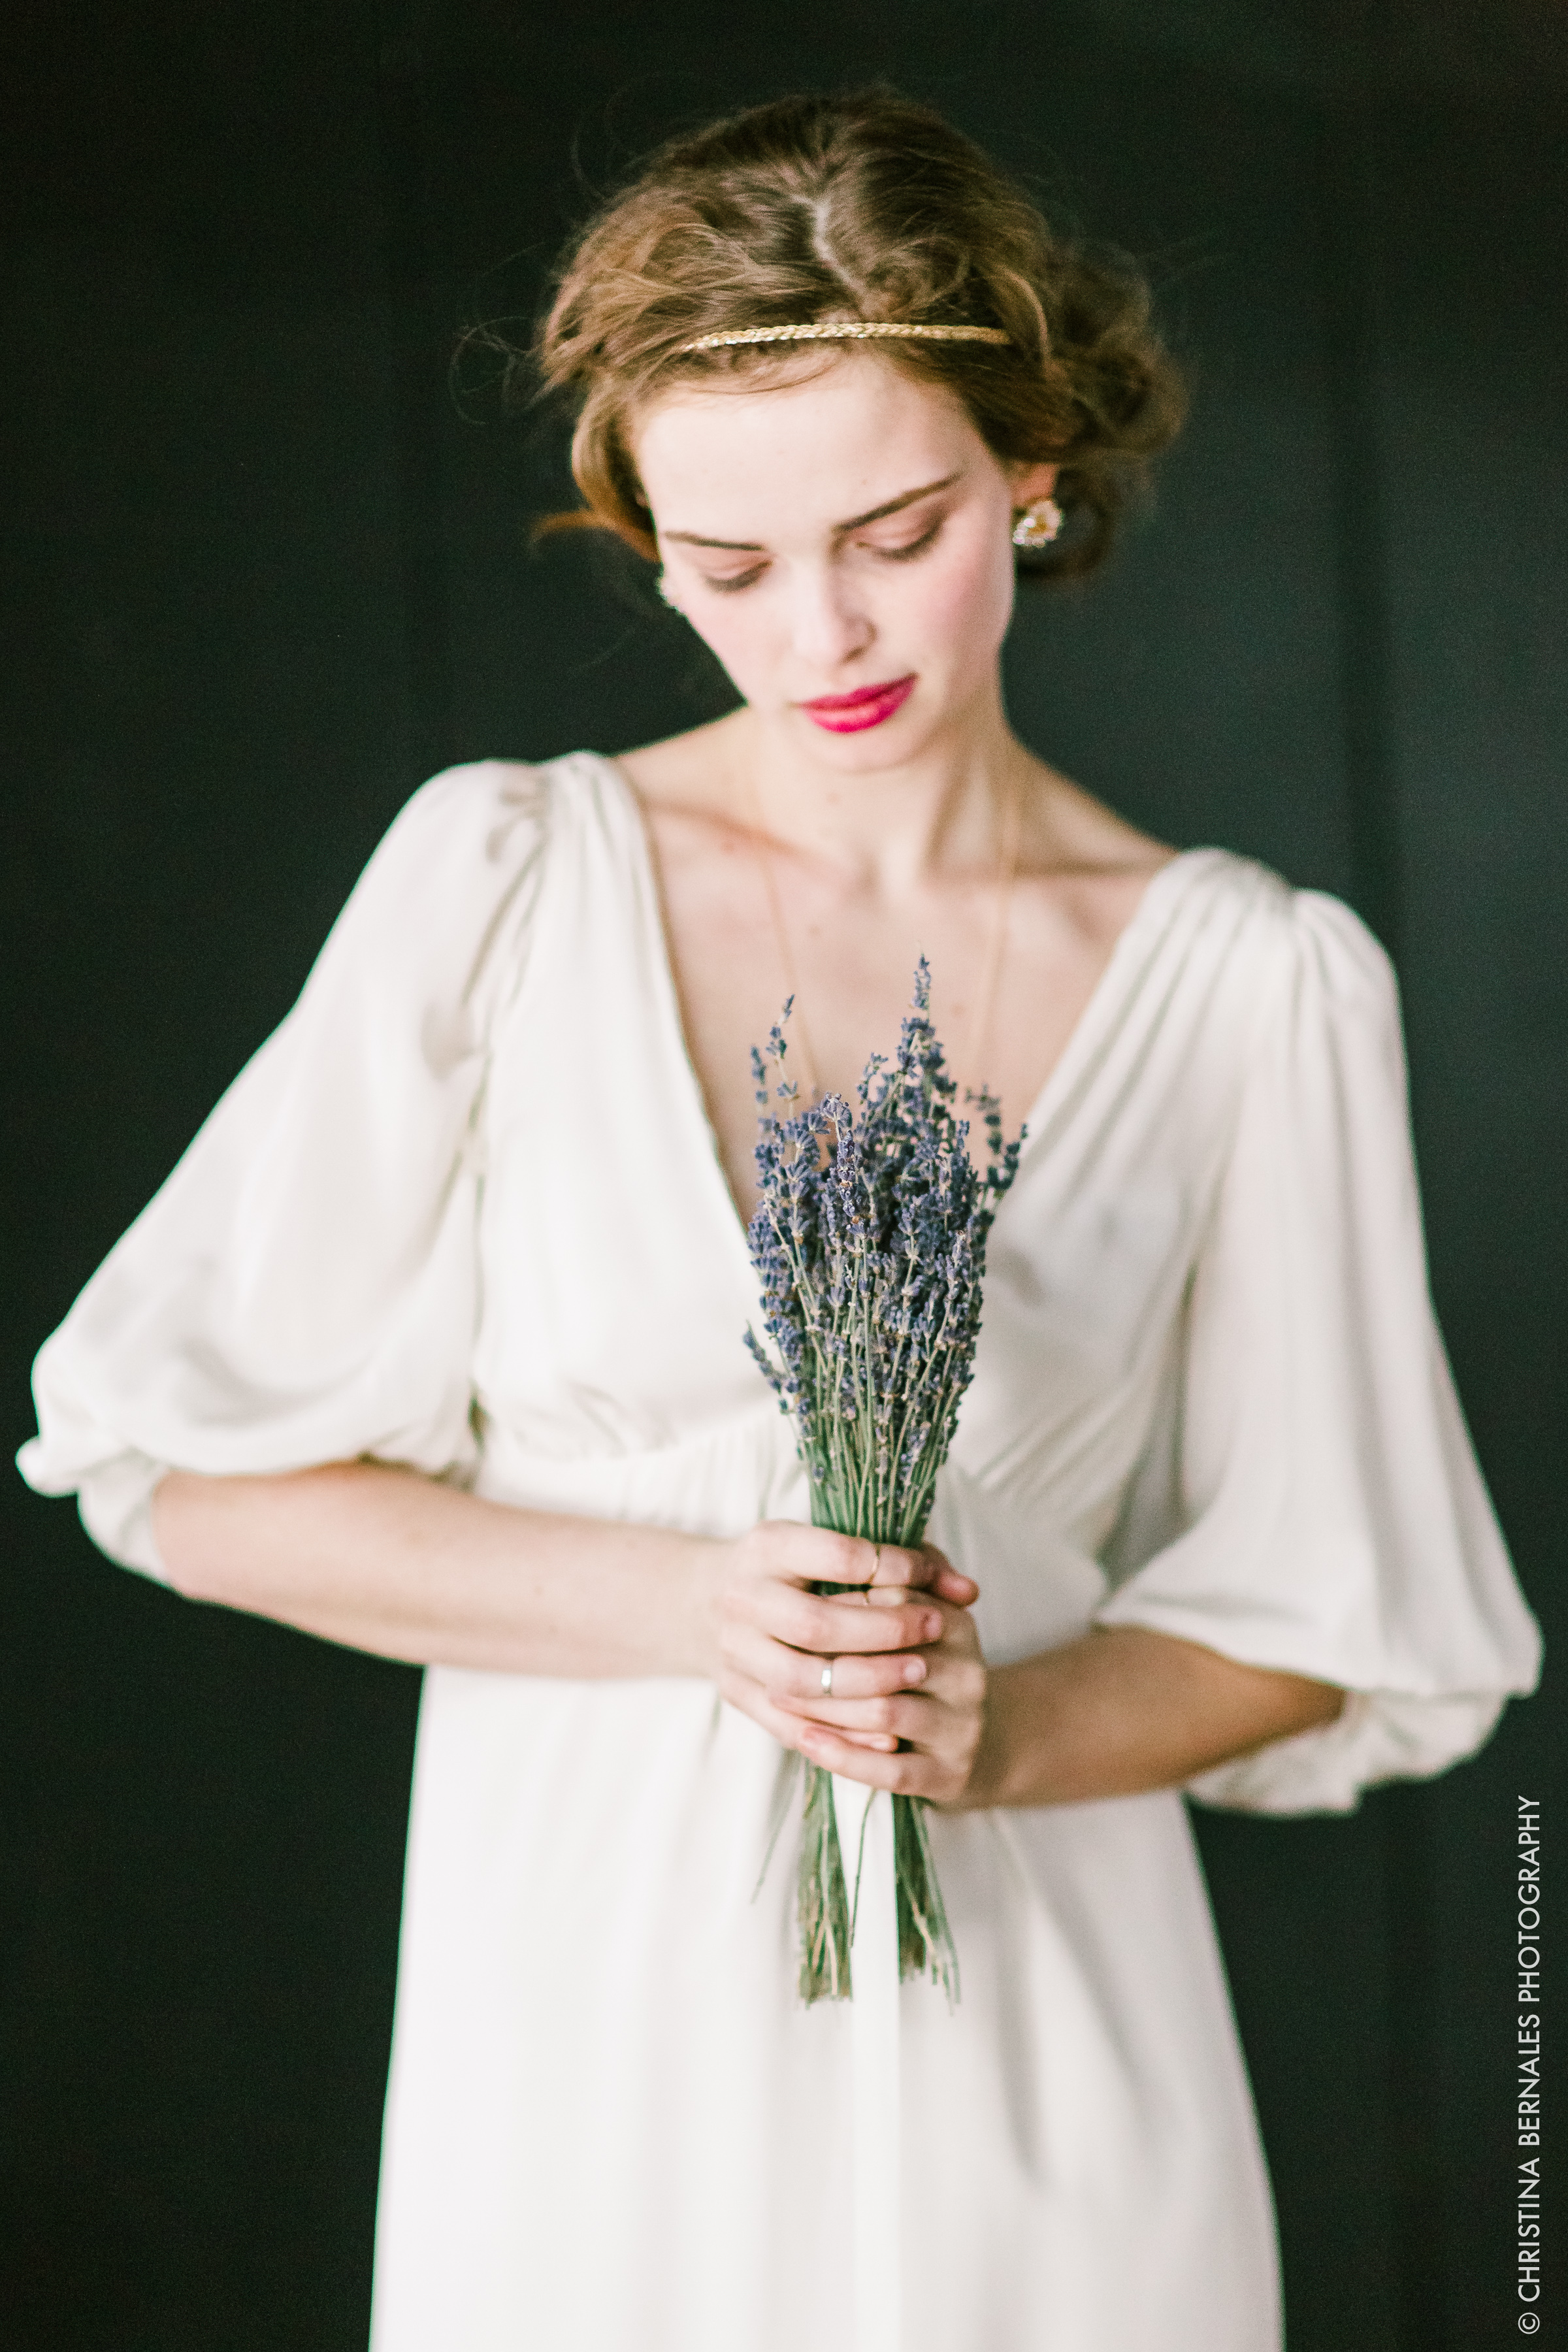 Dried Bridal Bouquet Design | Nectar & Root  Simple dried flower wedding bridal bouquet of lavender by Nectar & Root.